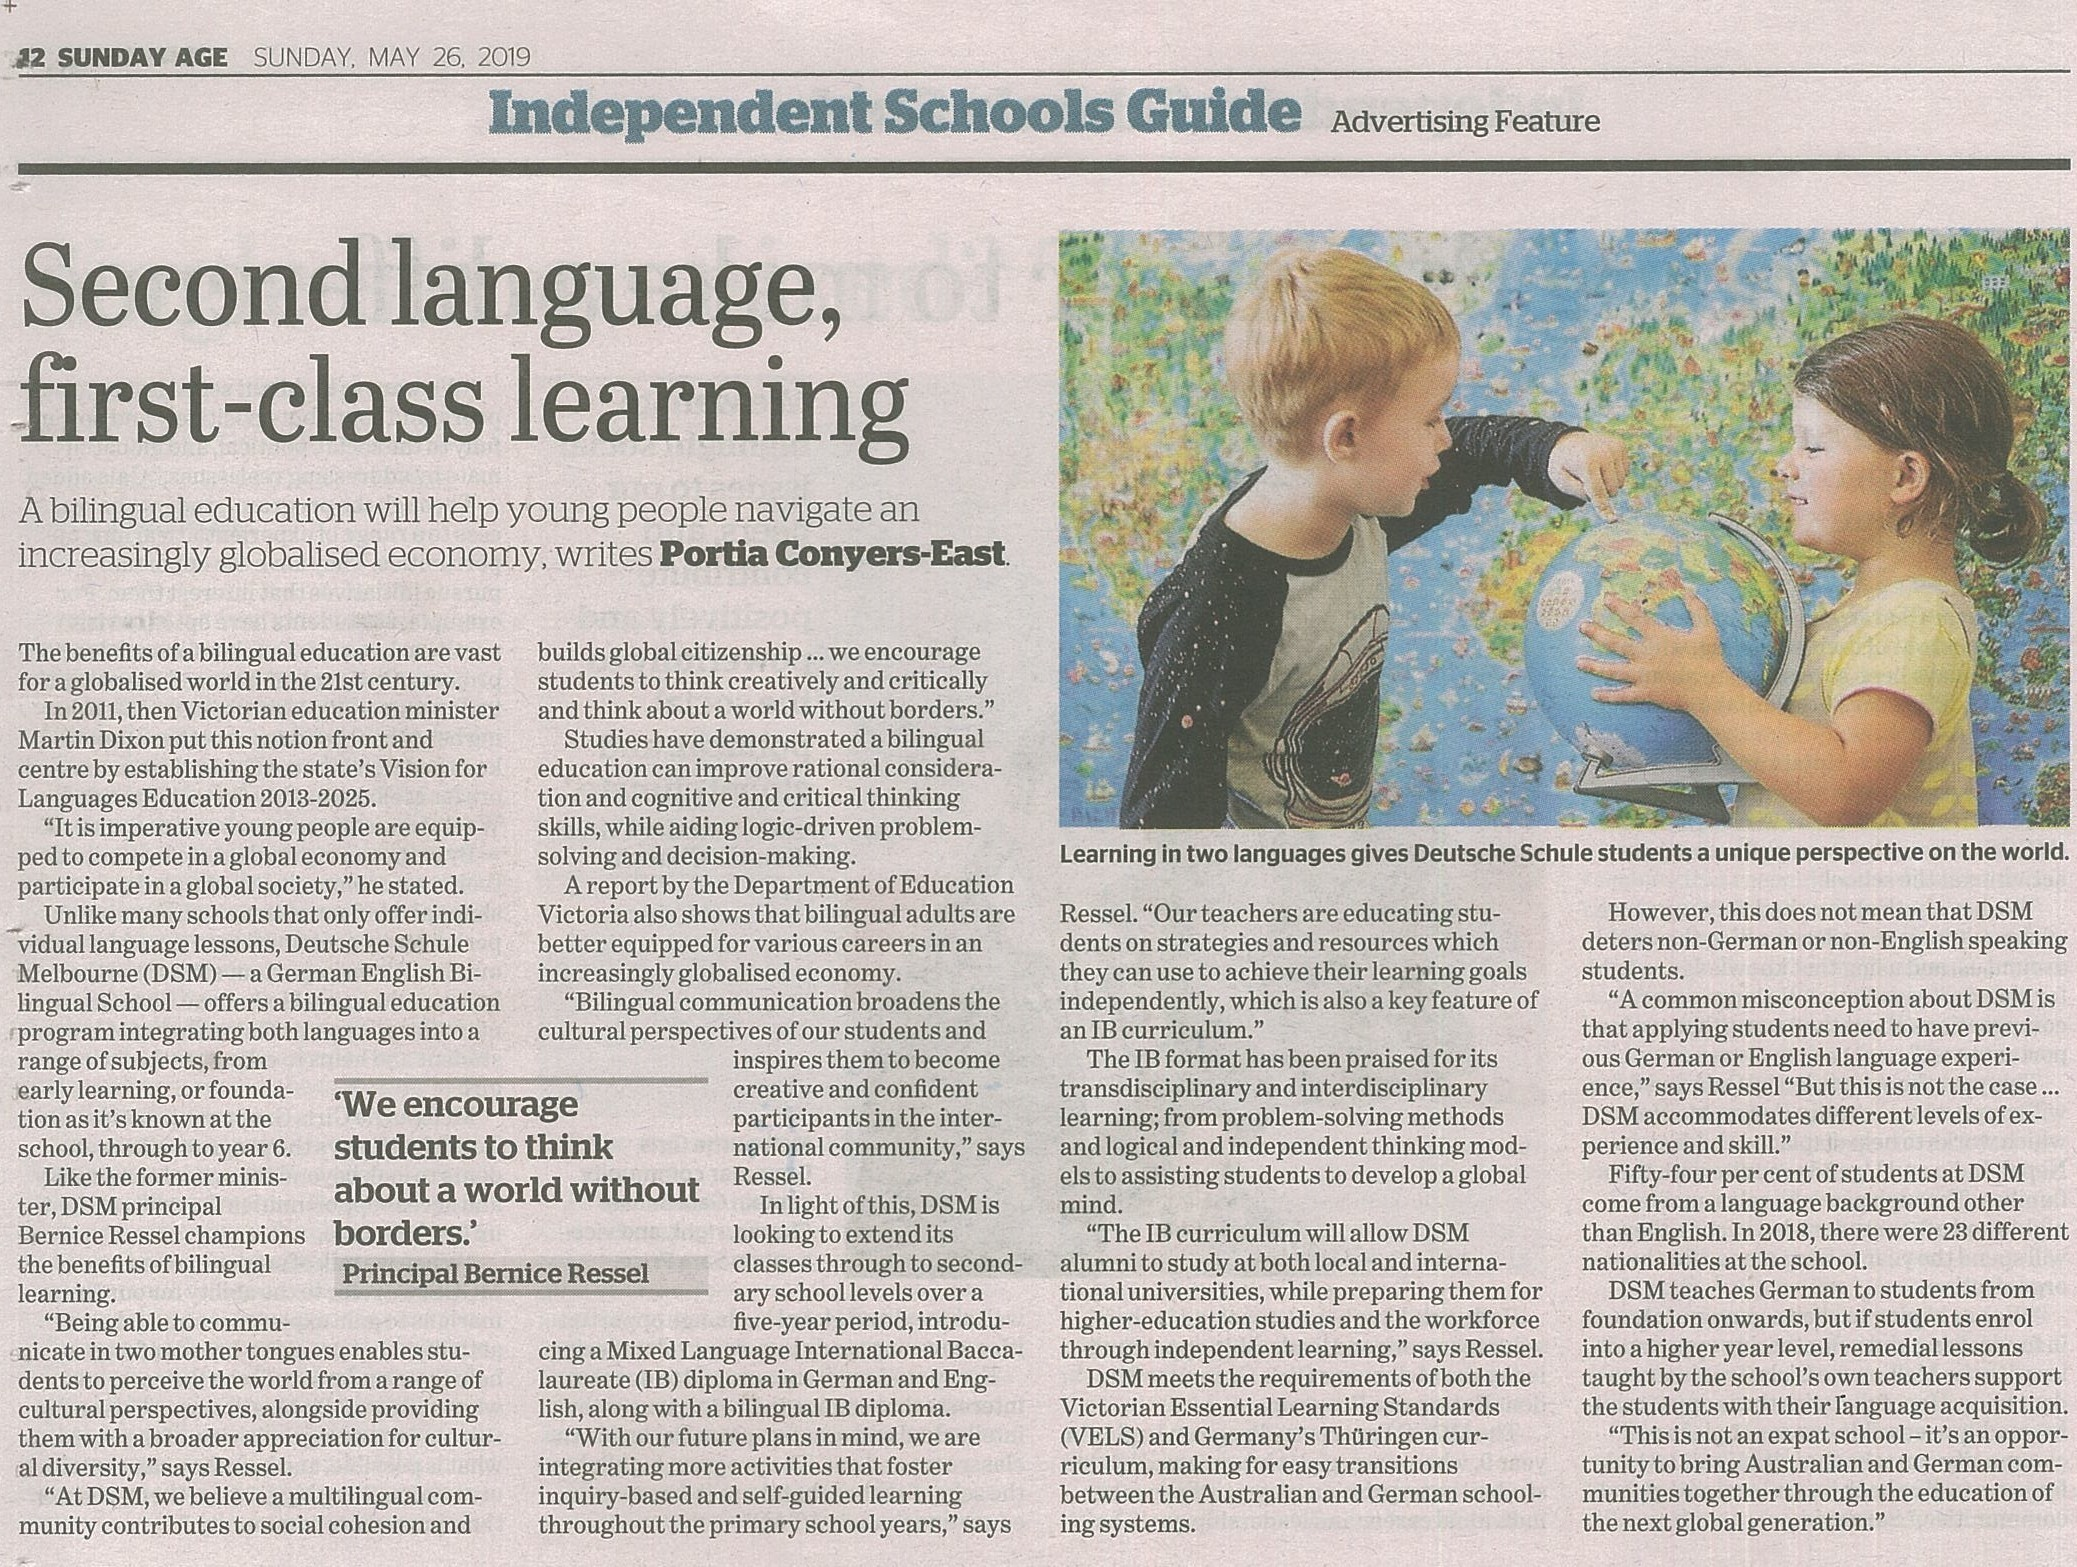 Independent Schools Guide - Deutsche Schule Melbourne